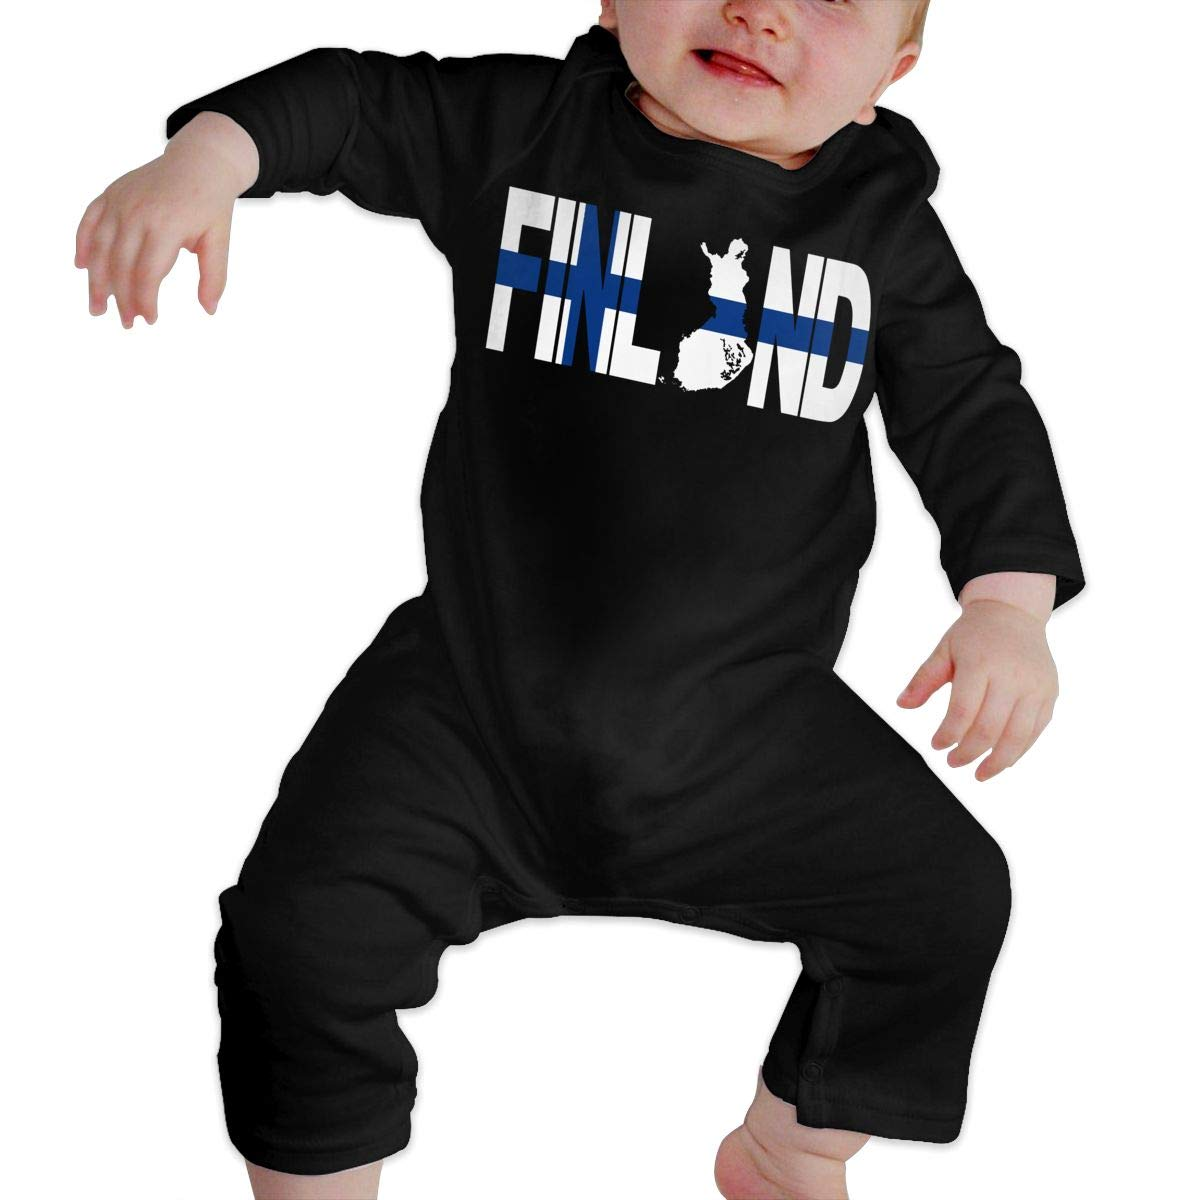 A1BY-5US Baby Infant Toddler Cotton Long Sleeve Finland Text with Map Climb Romper Funny Printed Romper Clothes